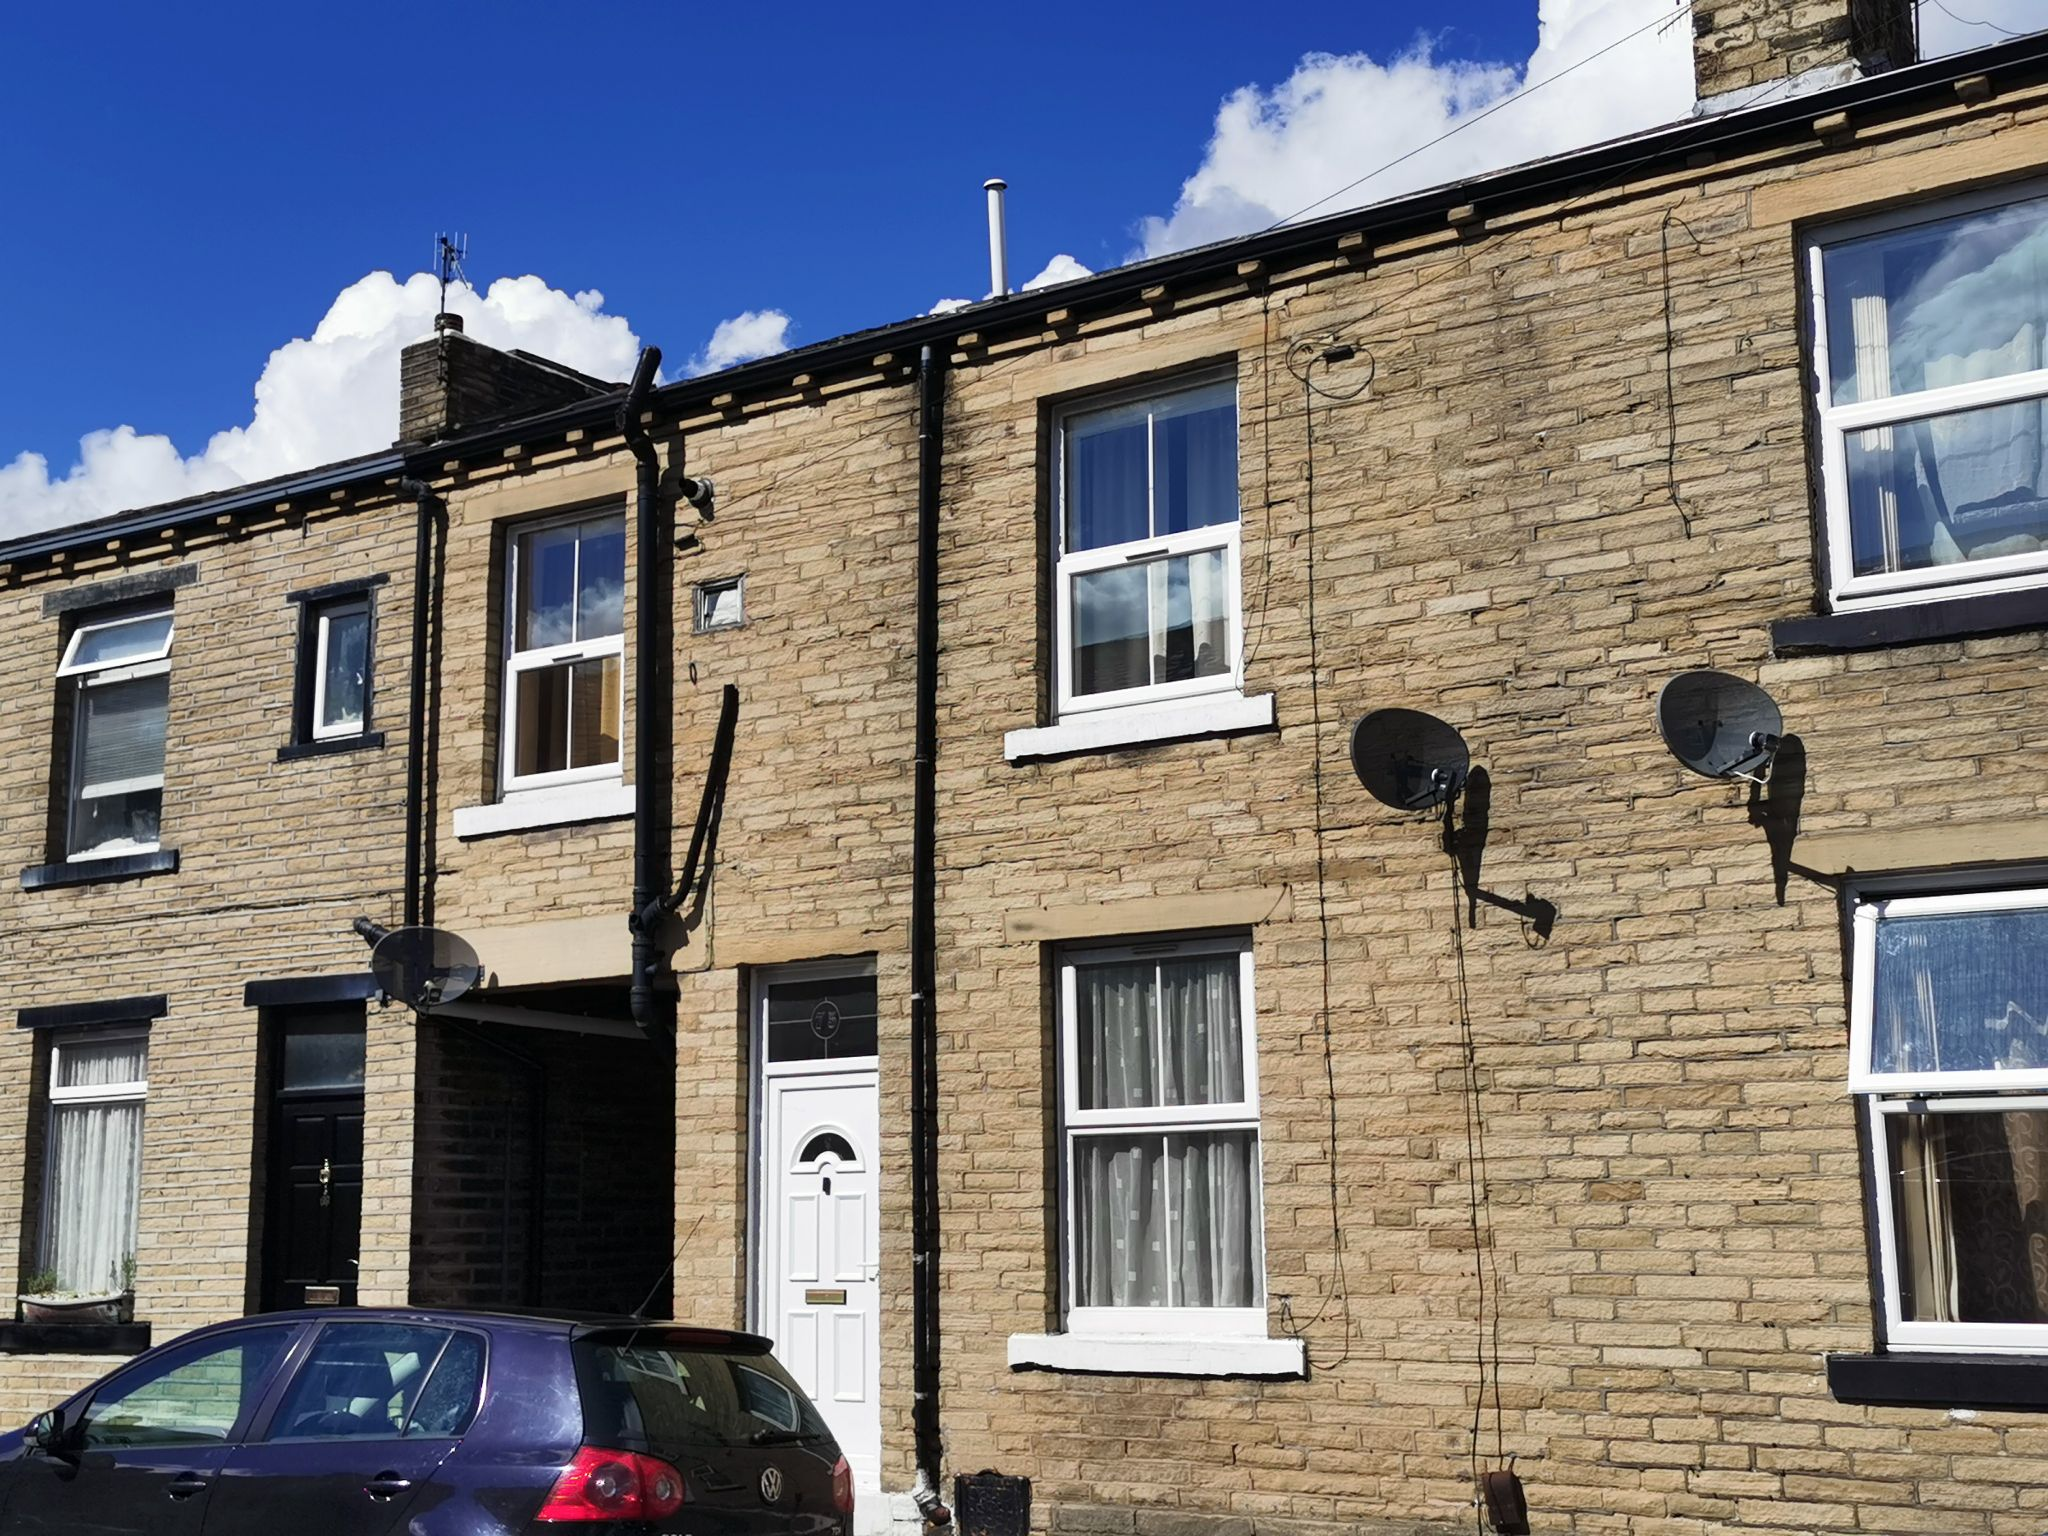 2 bedroom mid terraced house Let in Bradford - Photograph 3.